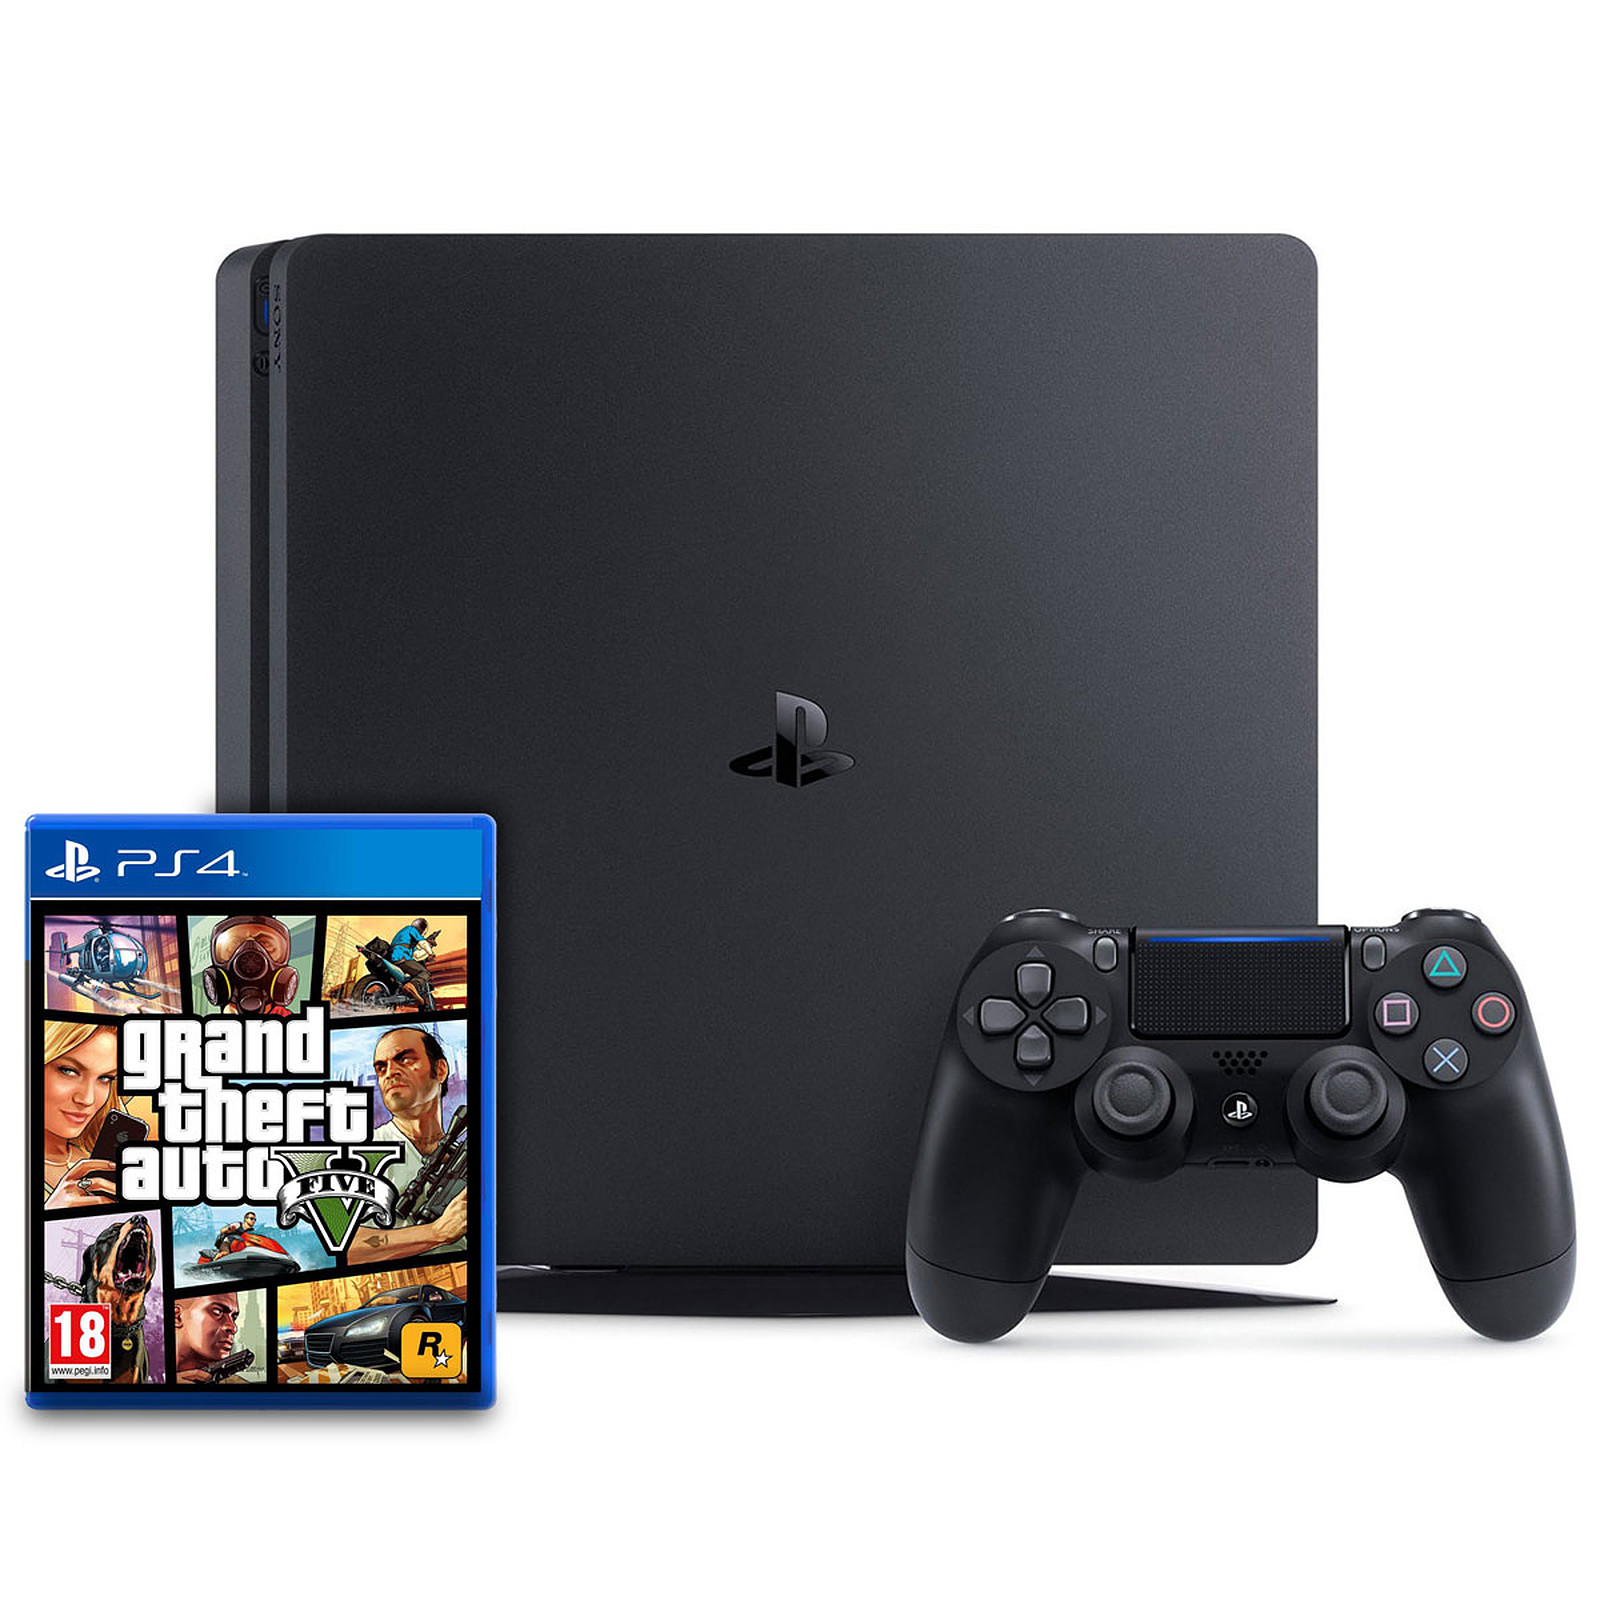 Sony PlayStation 4 Slim (1 To) + Grand Theft Auto V (GTA 5)